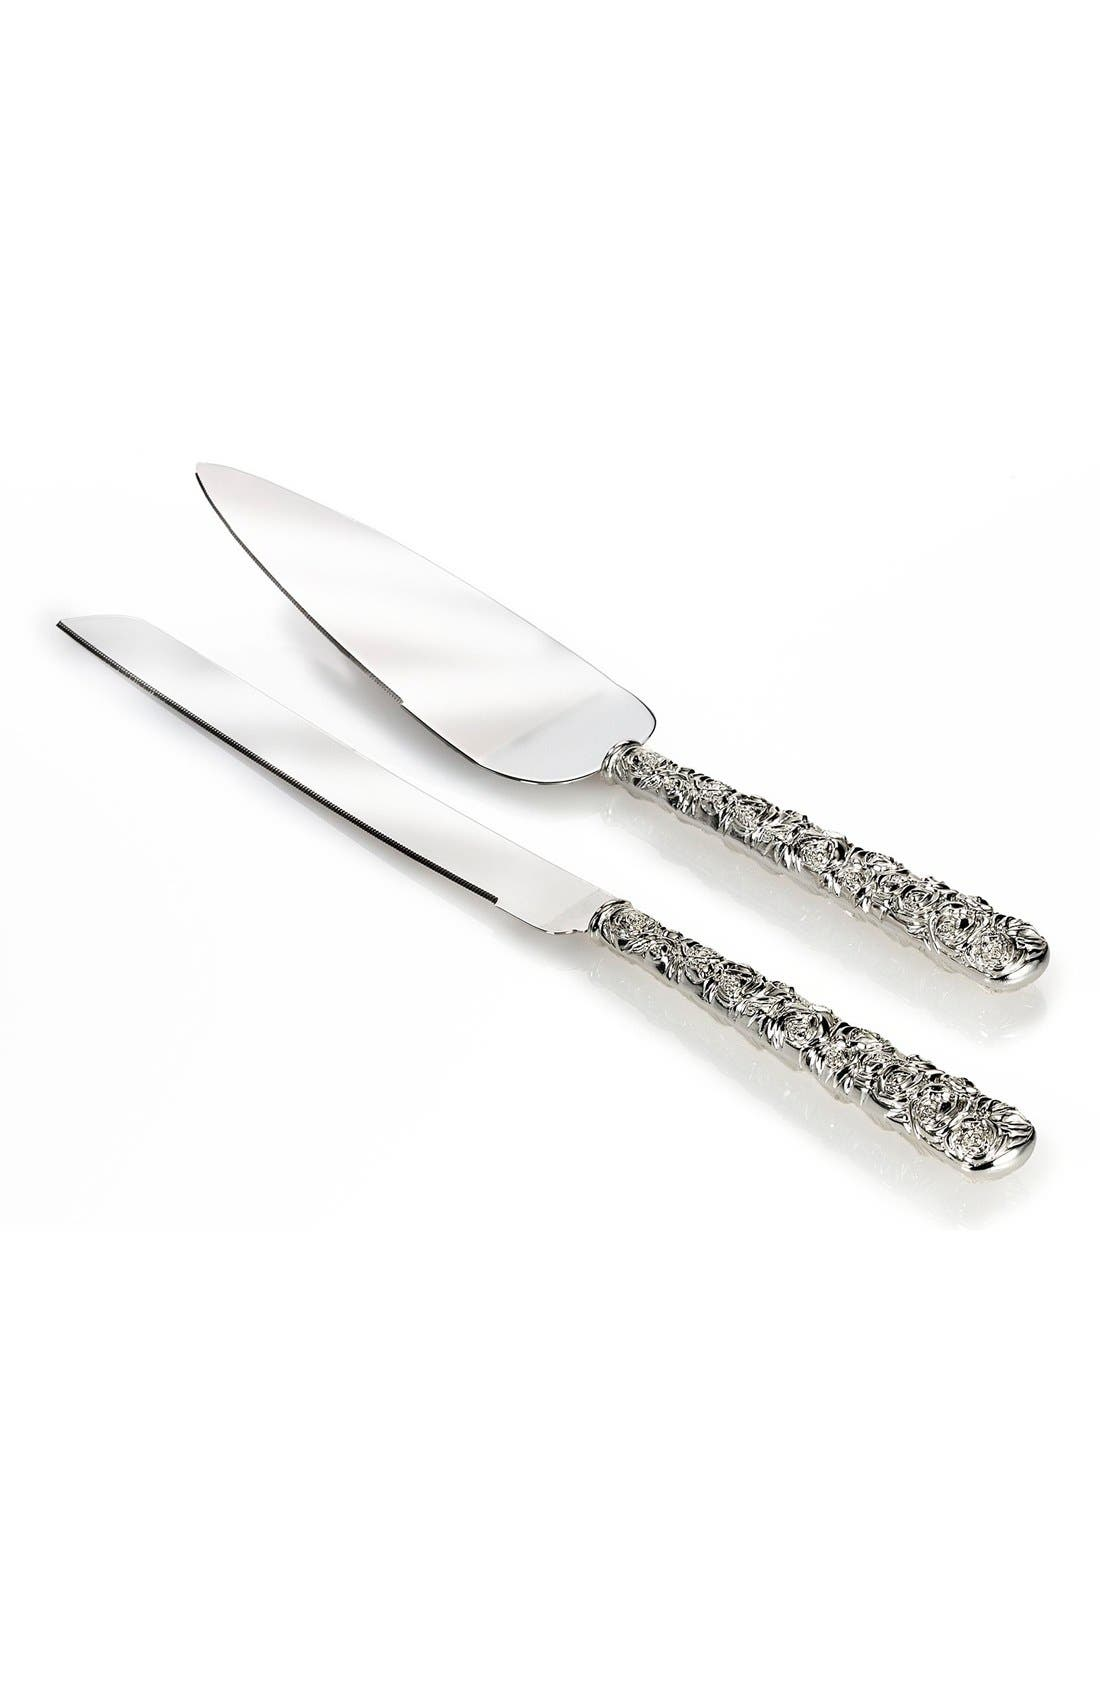 Alternate Image 1 Selected - Monique LhuillierWaterford 'Sunday Rose' Silverplate 2-Piece Cake Serving Set